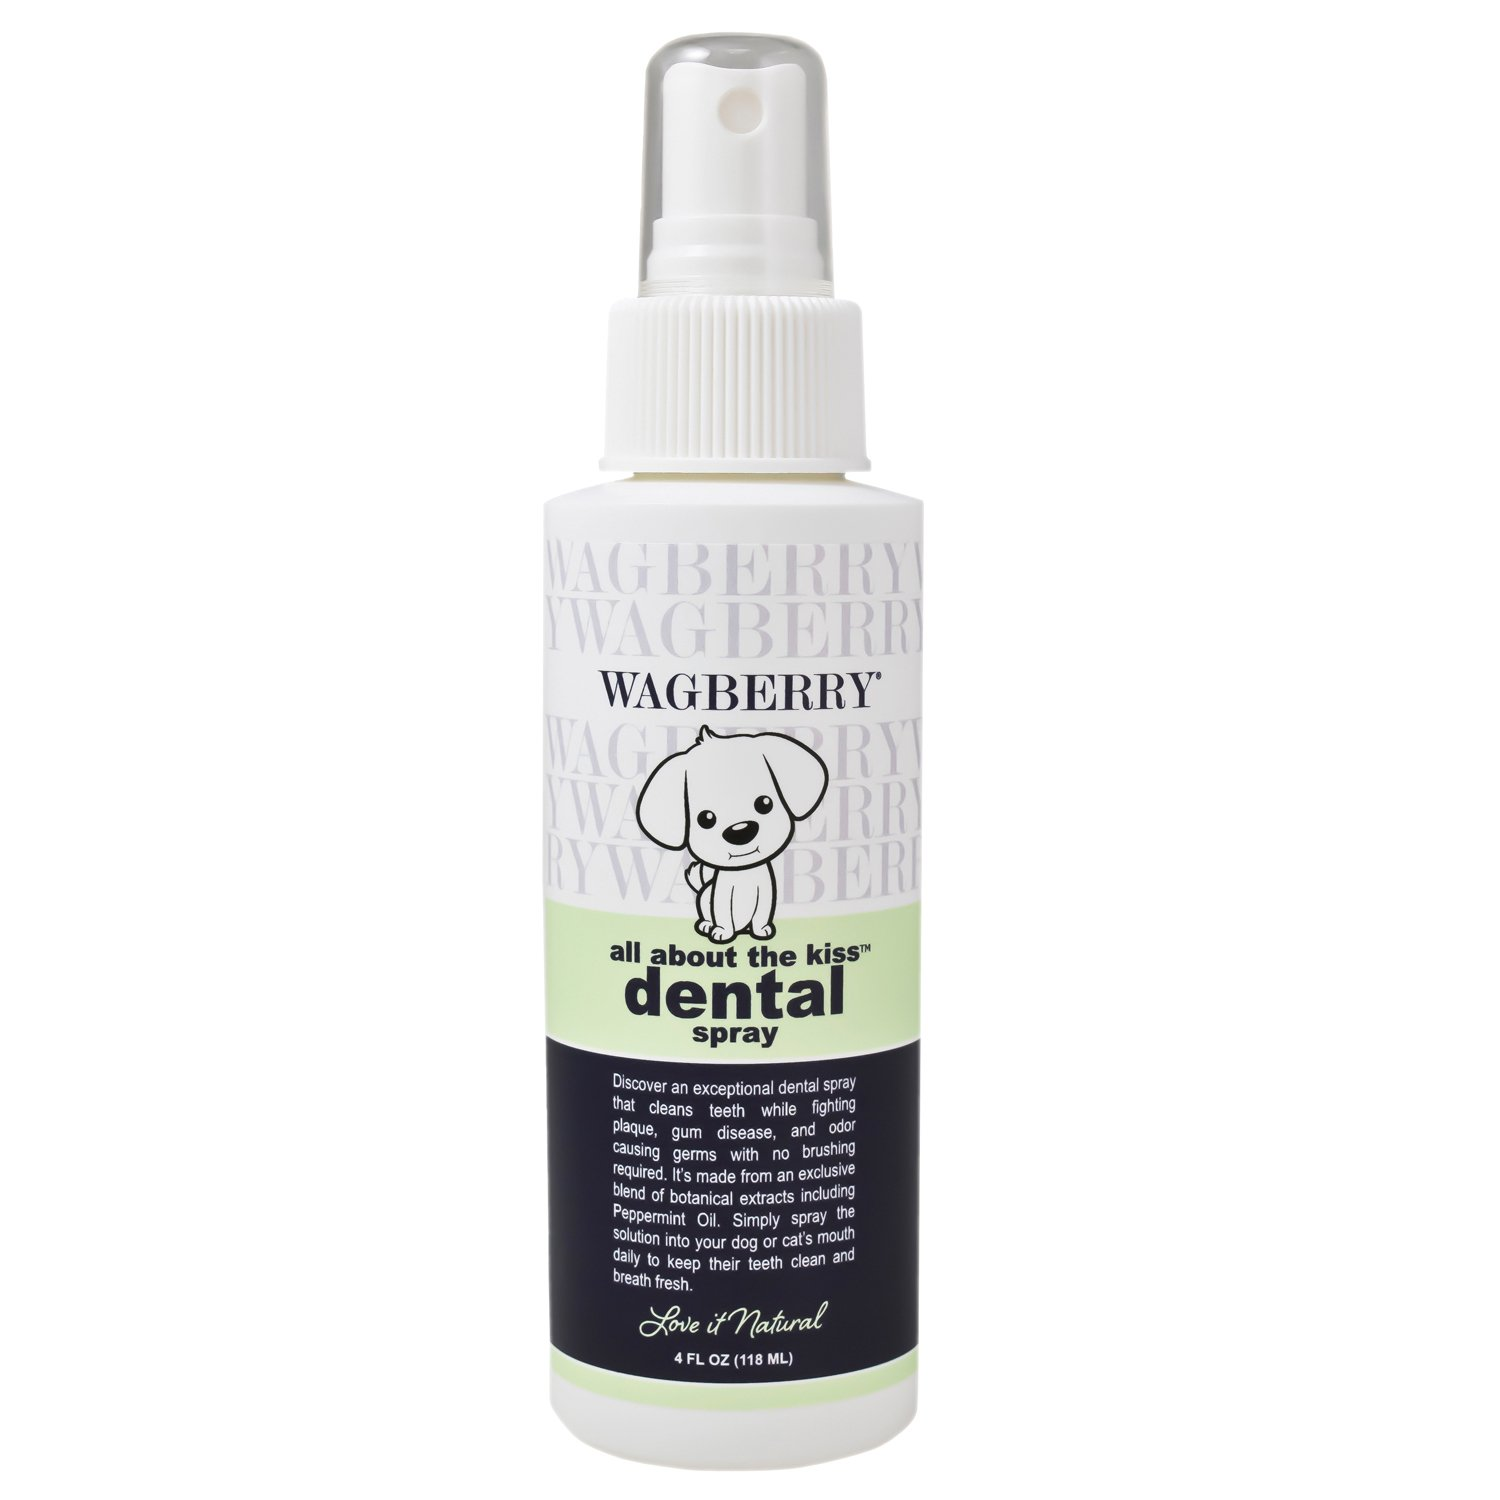 Wagberry All About The Kiss Dental Spray - Eliminate Bad Breath, Fights Plaque, Tarter & Gum Disease, Best Oral Health Care for Dogs with Peppermint - Love IT Natural, Made in USA, 4oz